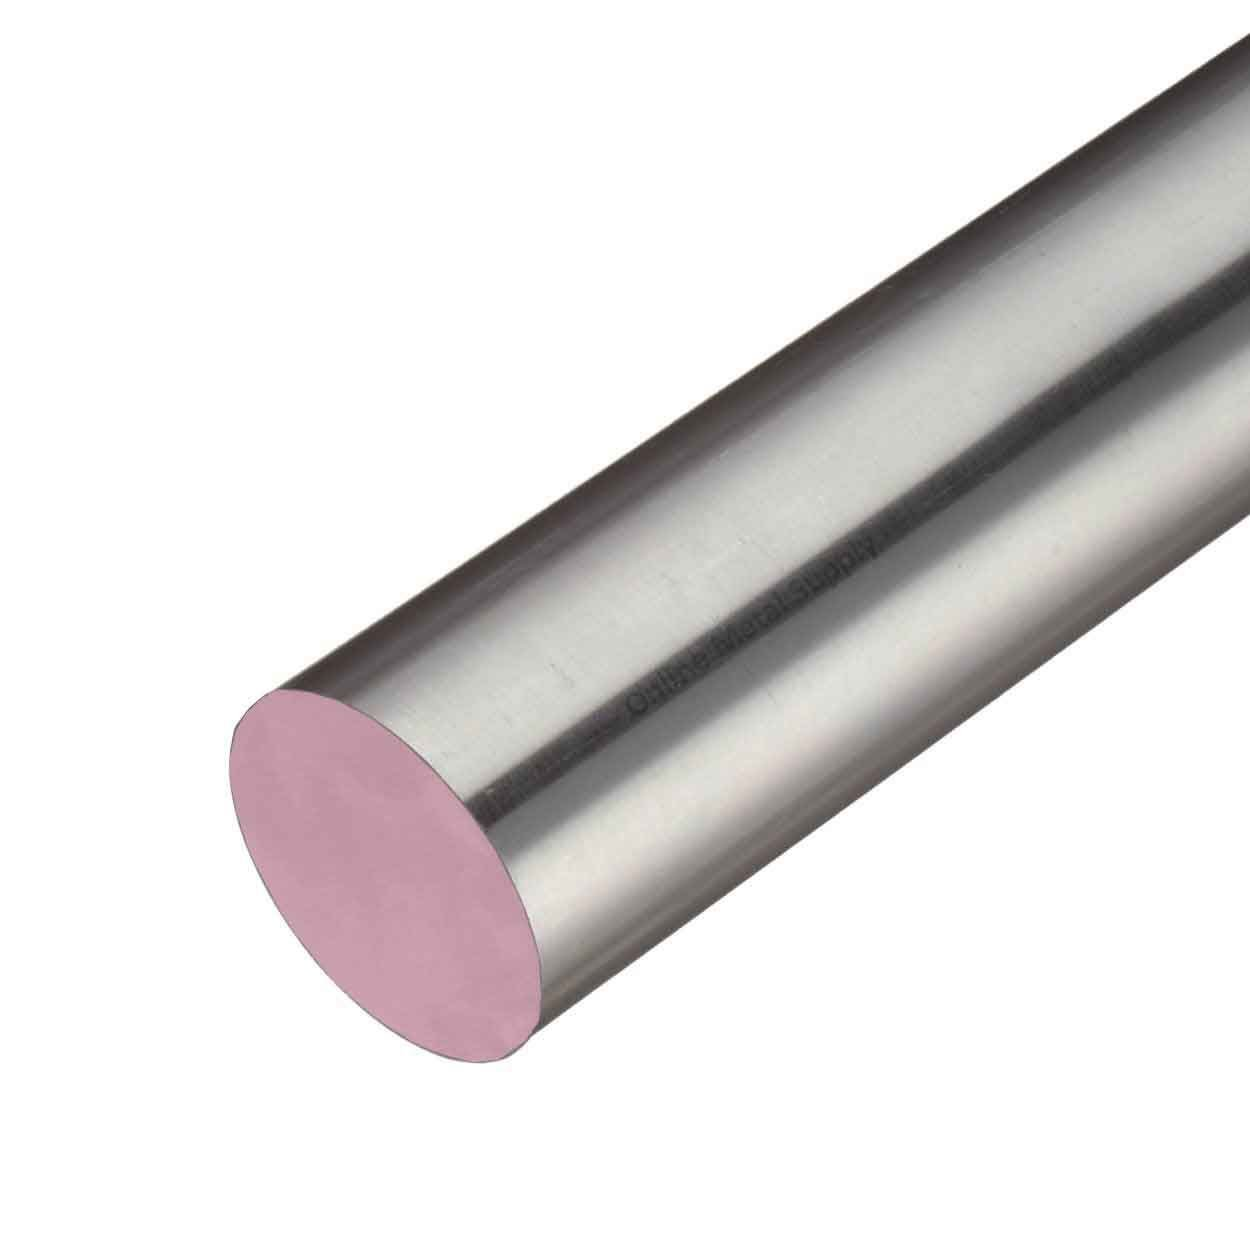 Online Metal Supply 303 Stainless Steel Round Rod, 2.500 (2-1/2 inch) x 7 inches